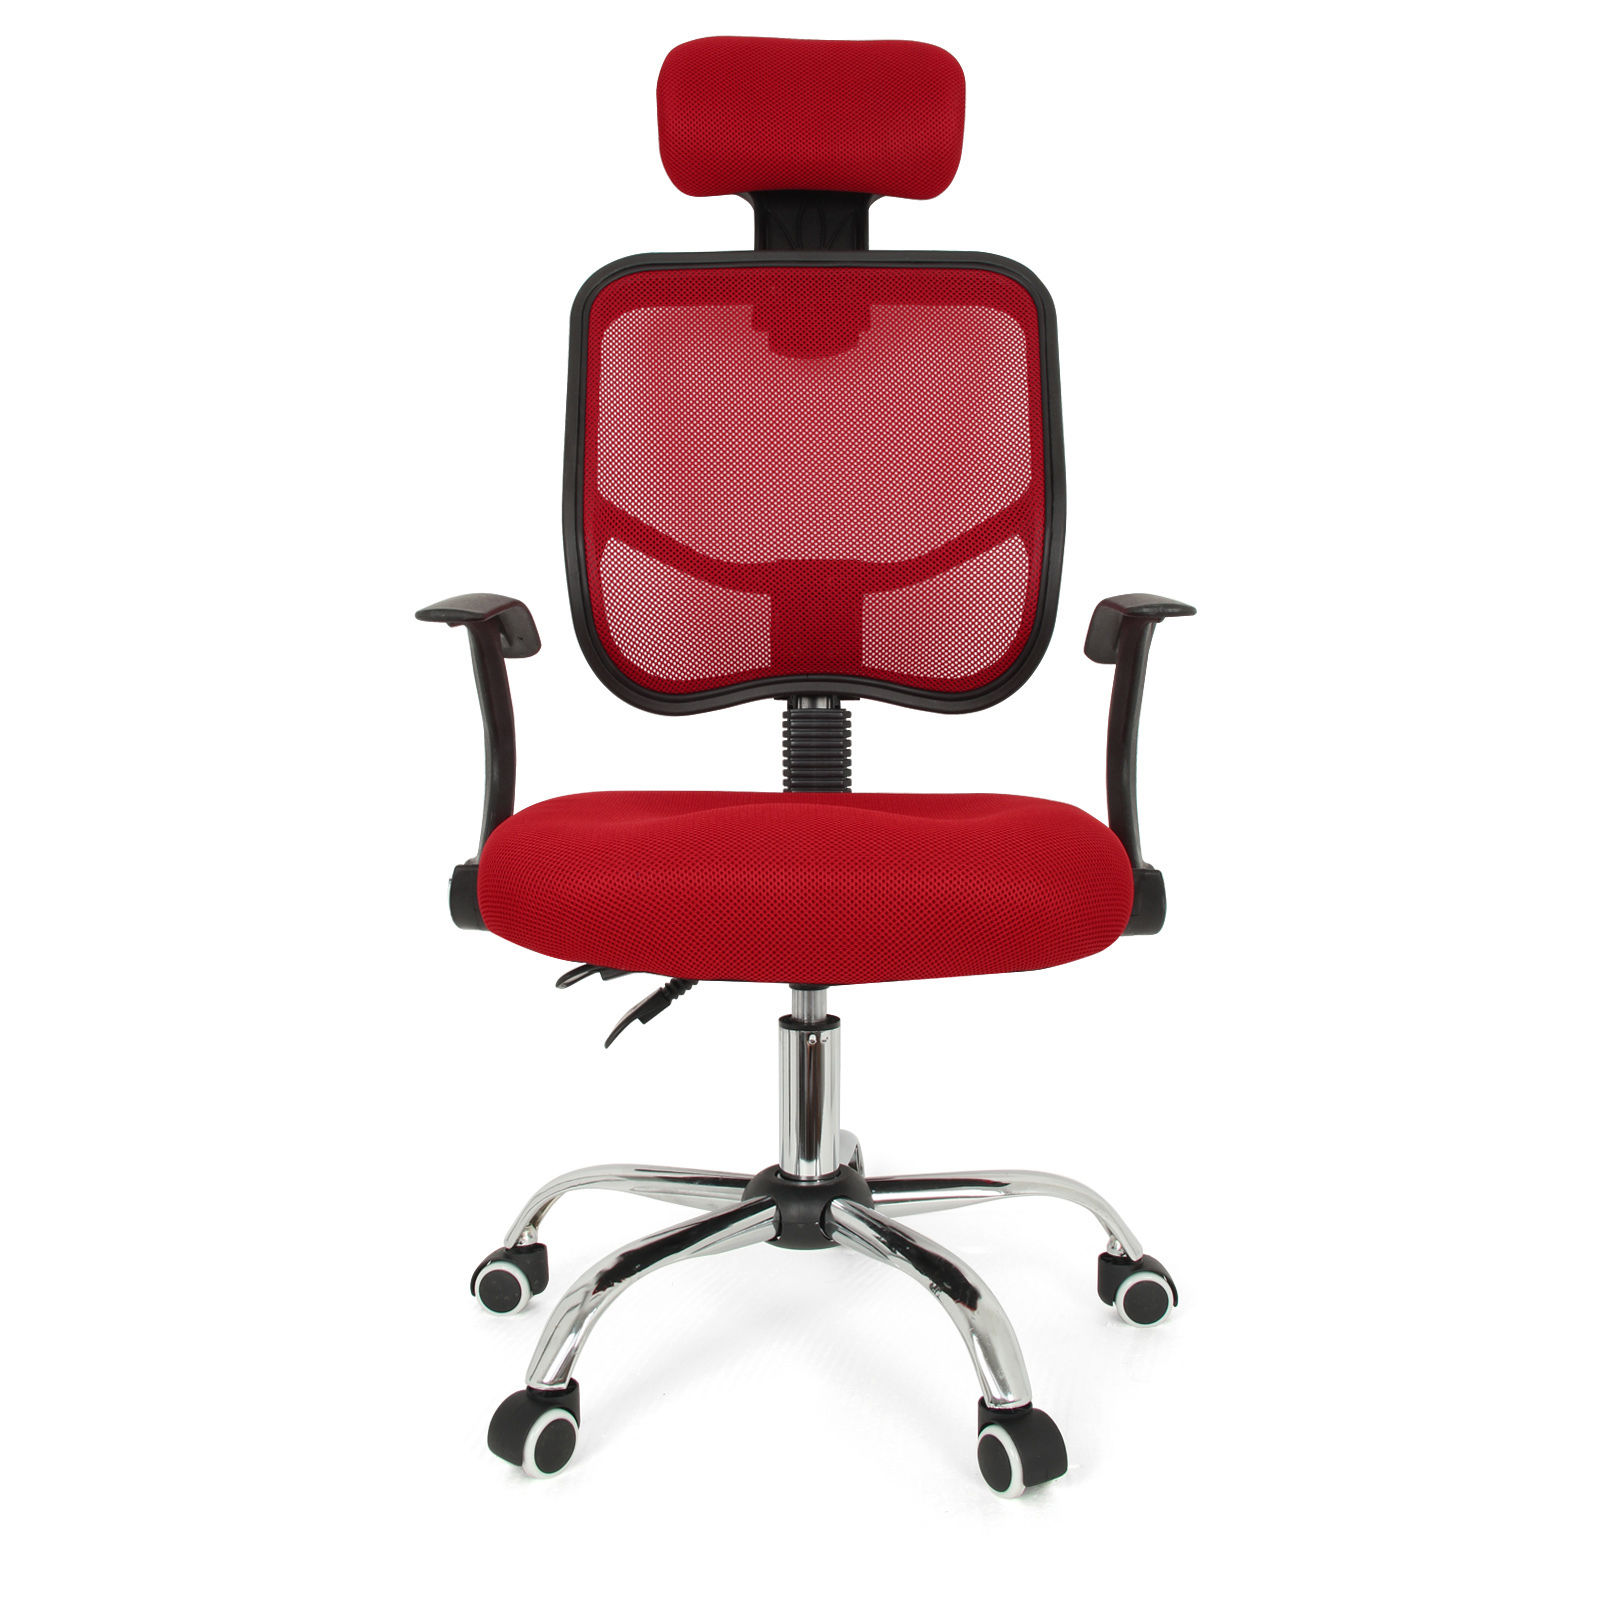 NOCM Seat Height Adjustment fice puter Desk Chair Chrome Mesh